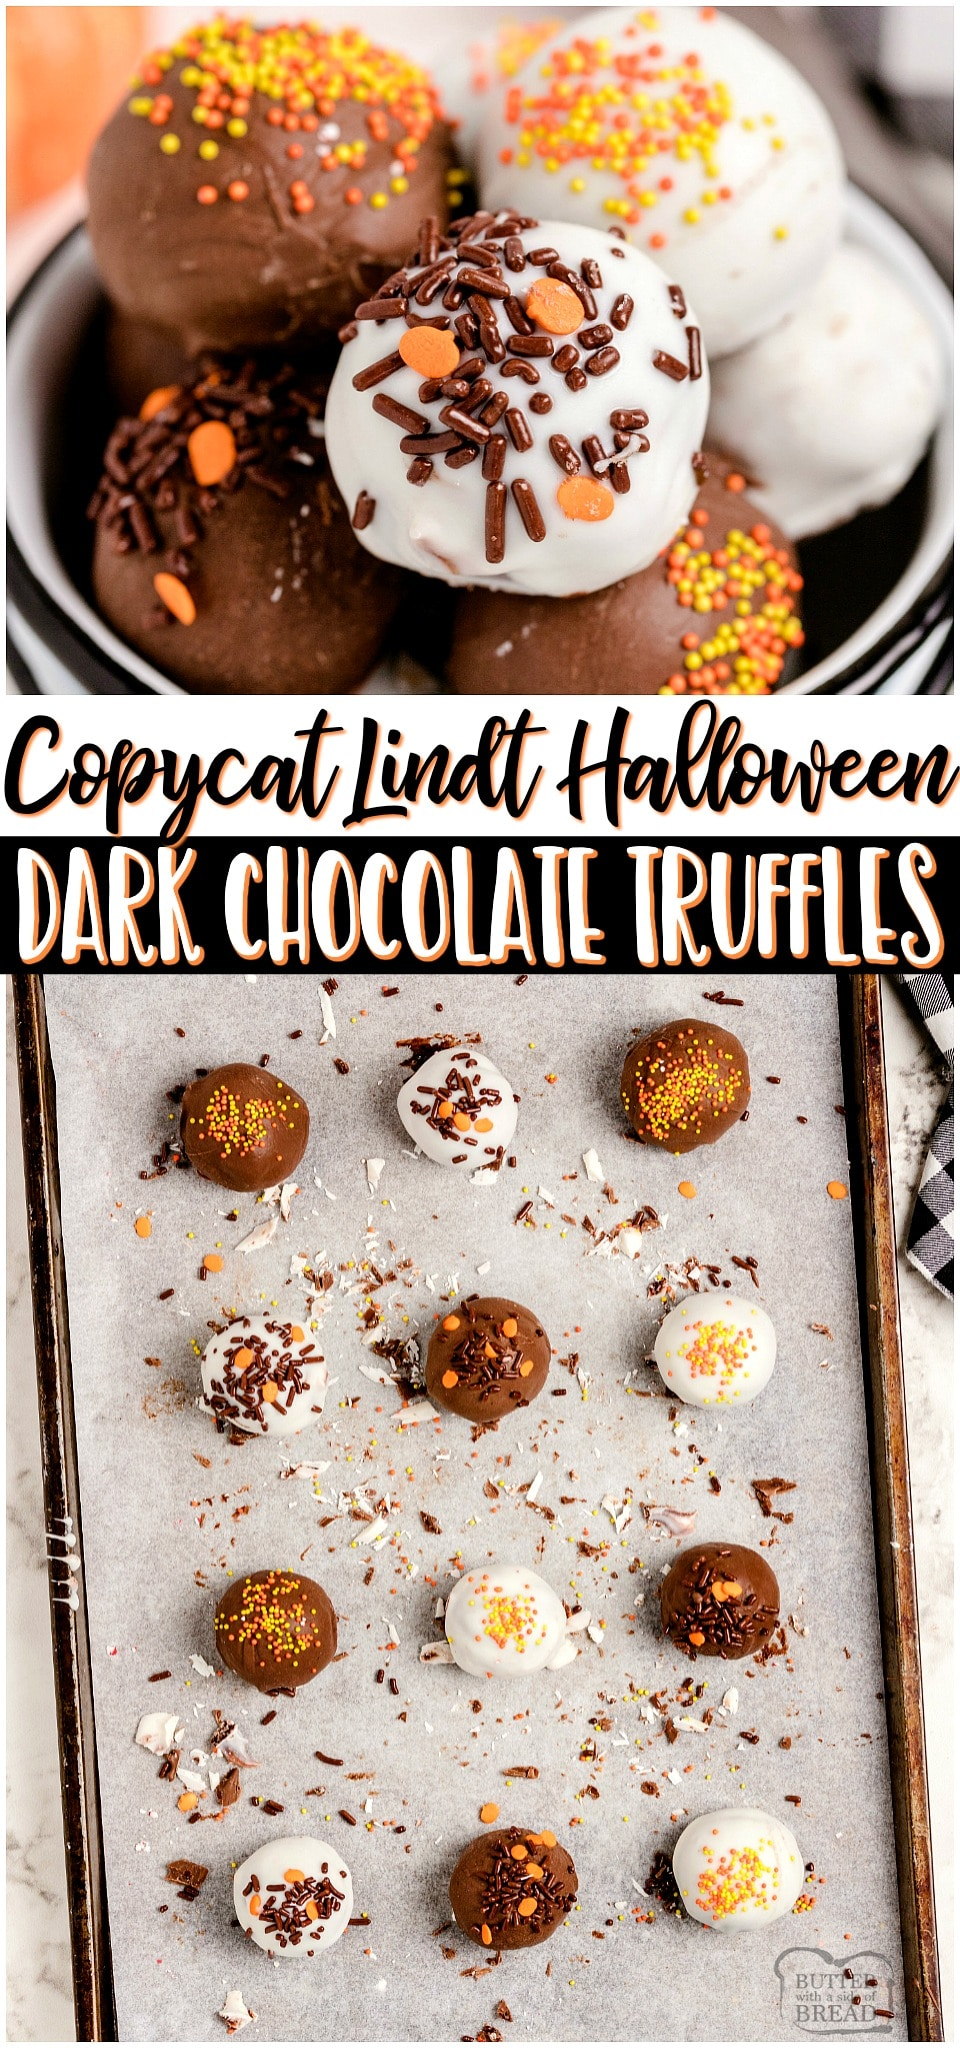 Homemade Halloween Lindt Dark Chocolate Trufflesmade with just 5 ingredients and SO amazing! Chocolate chips, heavy cream and butter combine for a rich & smooth lusciouschocolate truffle filling that rivals Lindt's! Chocolate lovers must try these festive Halloween Truffles! #Lindt #chocolate #truffles #candy #darkchocolate #Halloween #easyrecipe from BUTTER WITH A SIDE OF BREAD